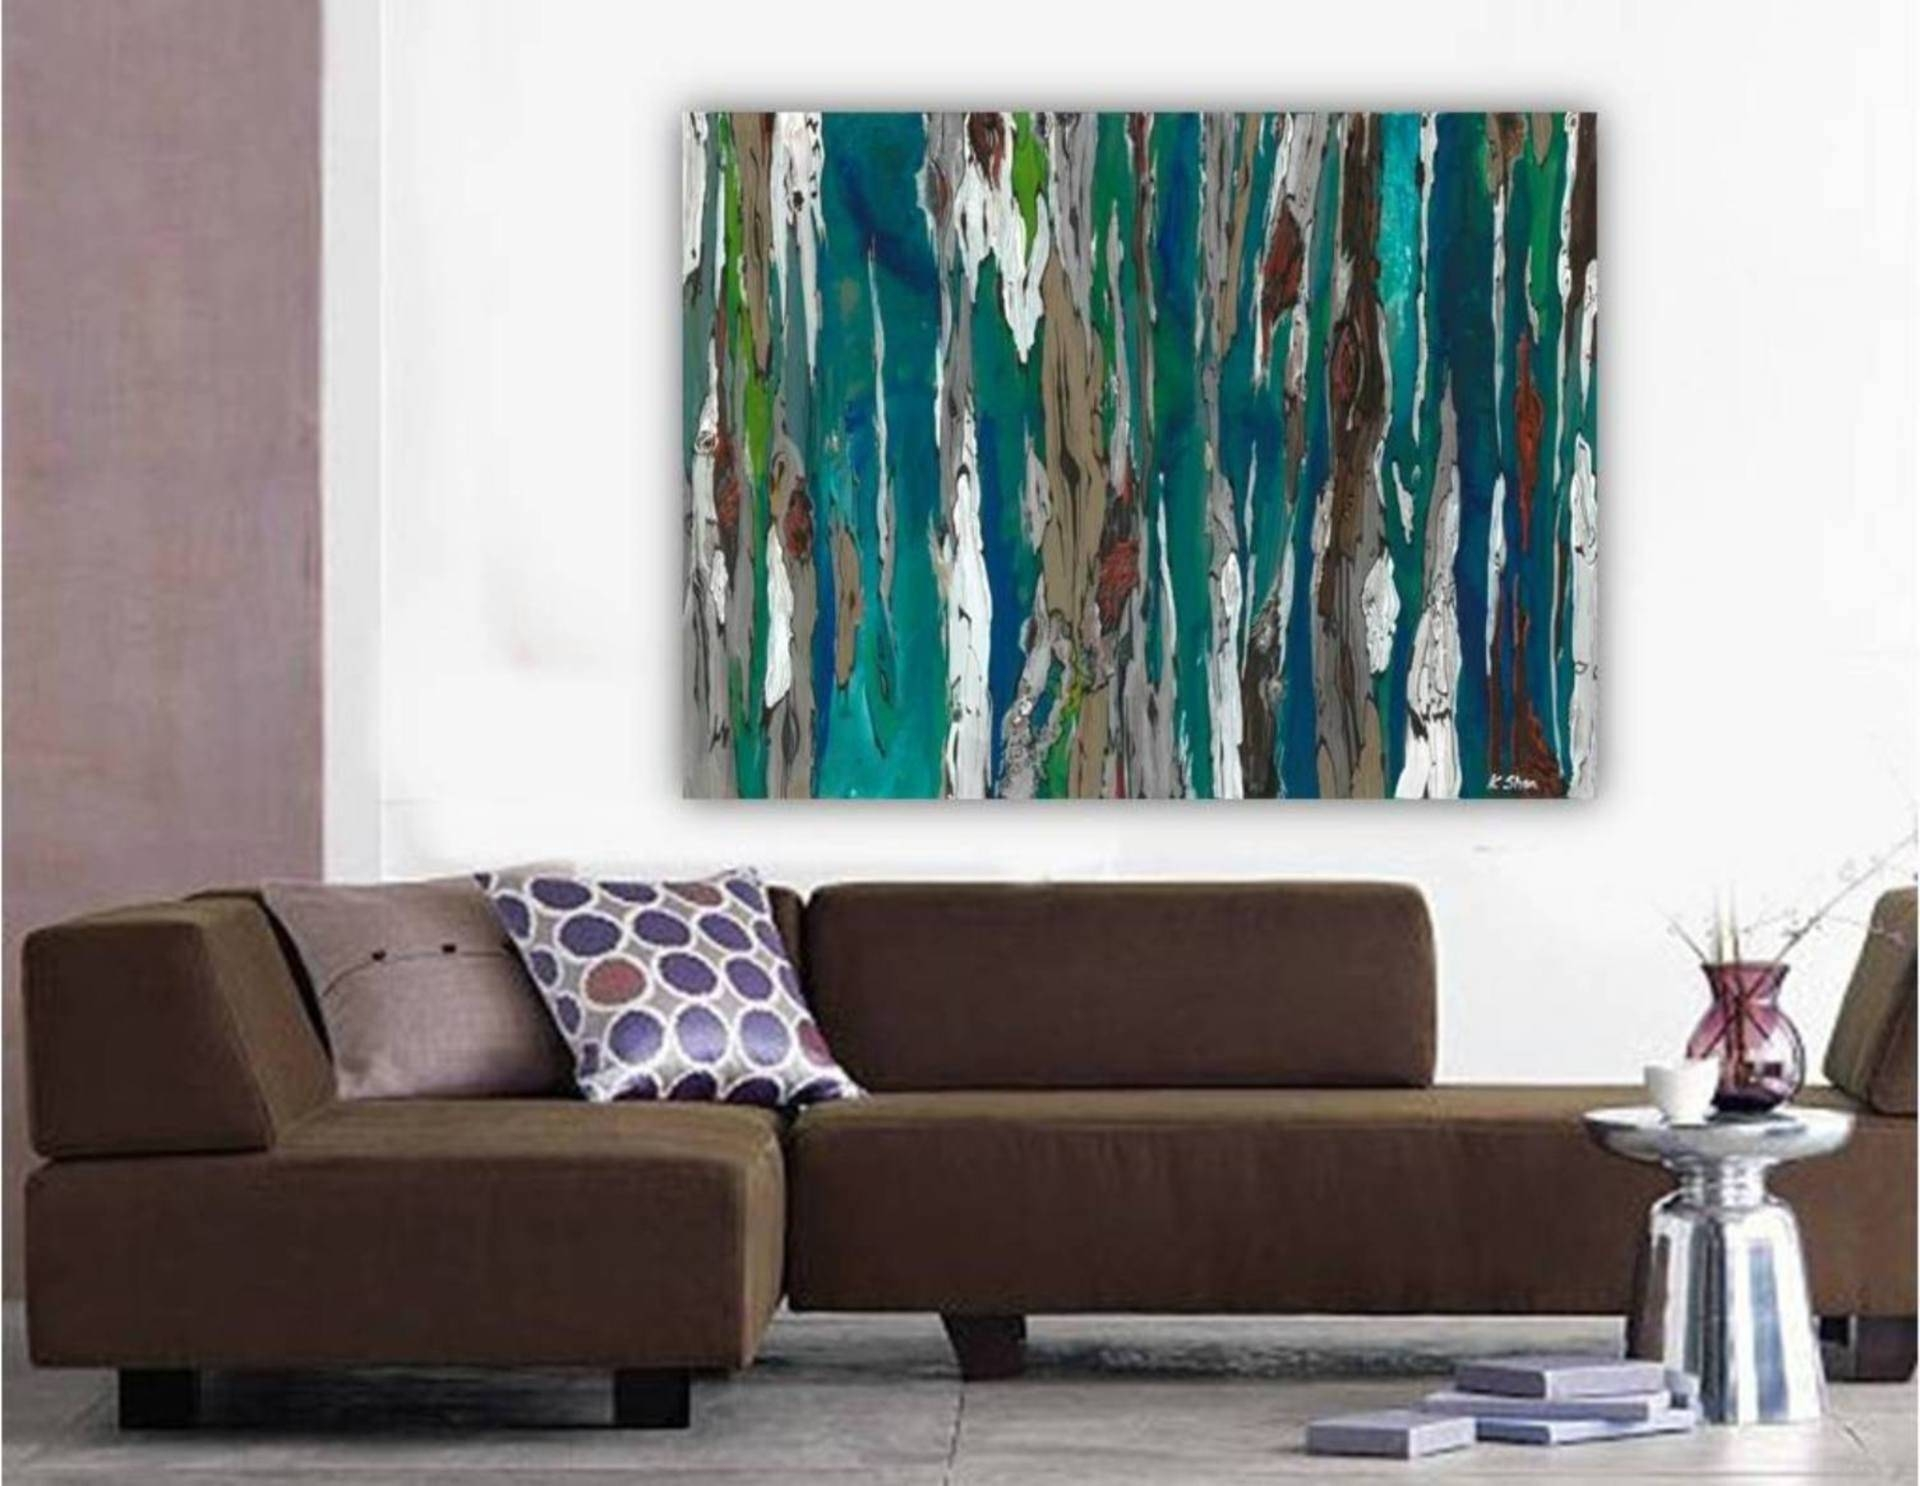 Saatchi Art: Large Contemporary Original Abstract Tree Landscape Throughout Current Turquoise And Brown Wall Art (View 15 of 25)